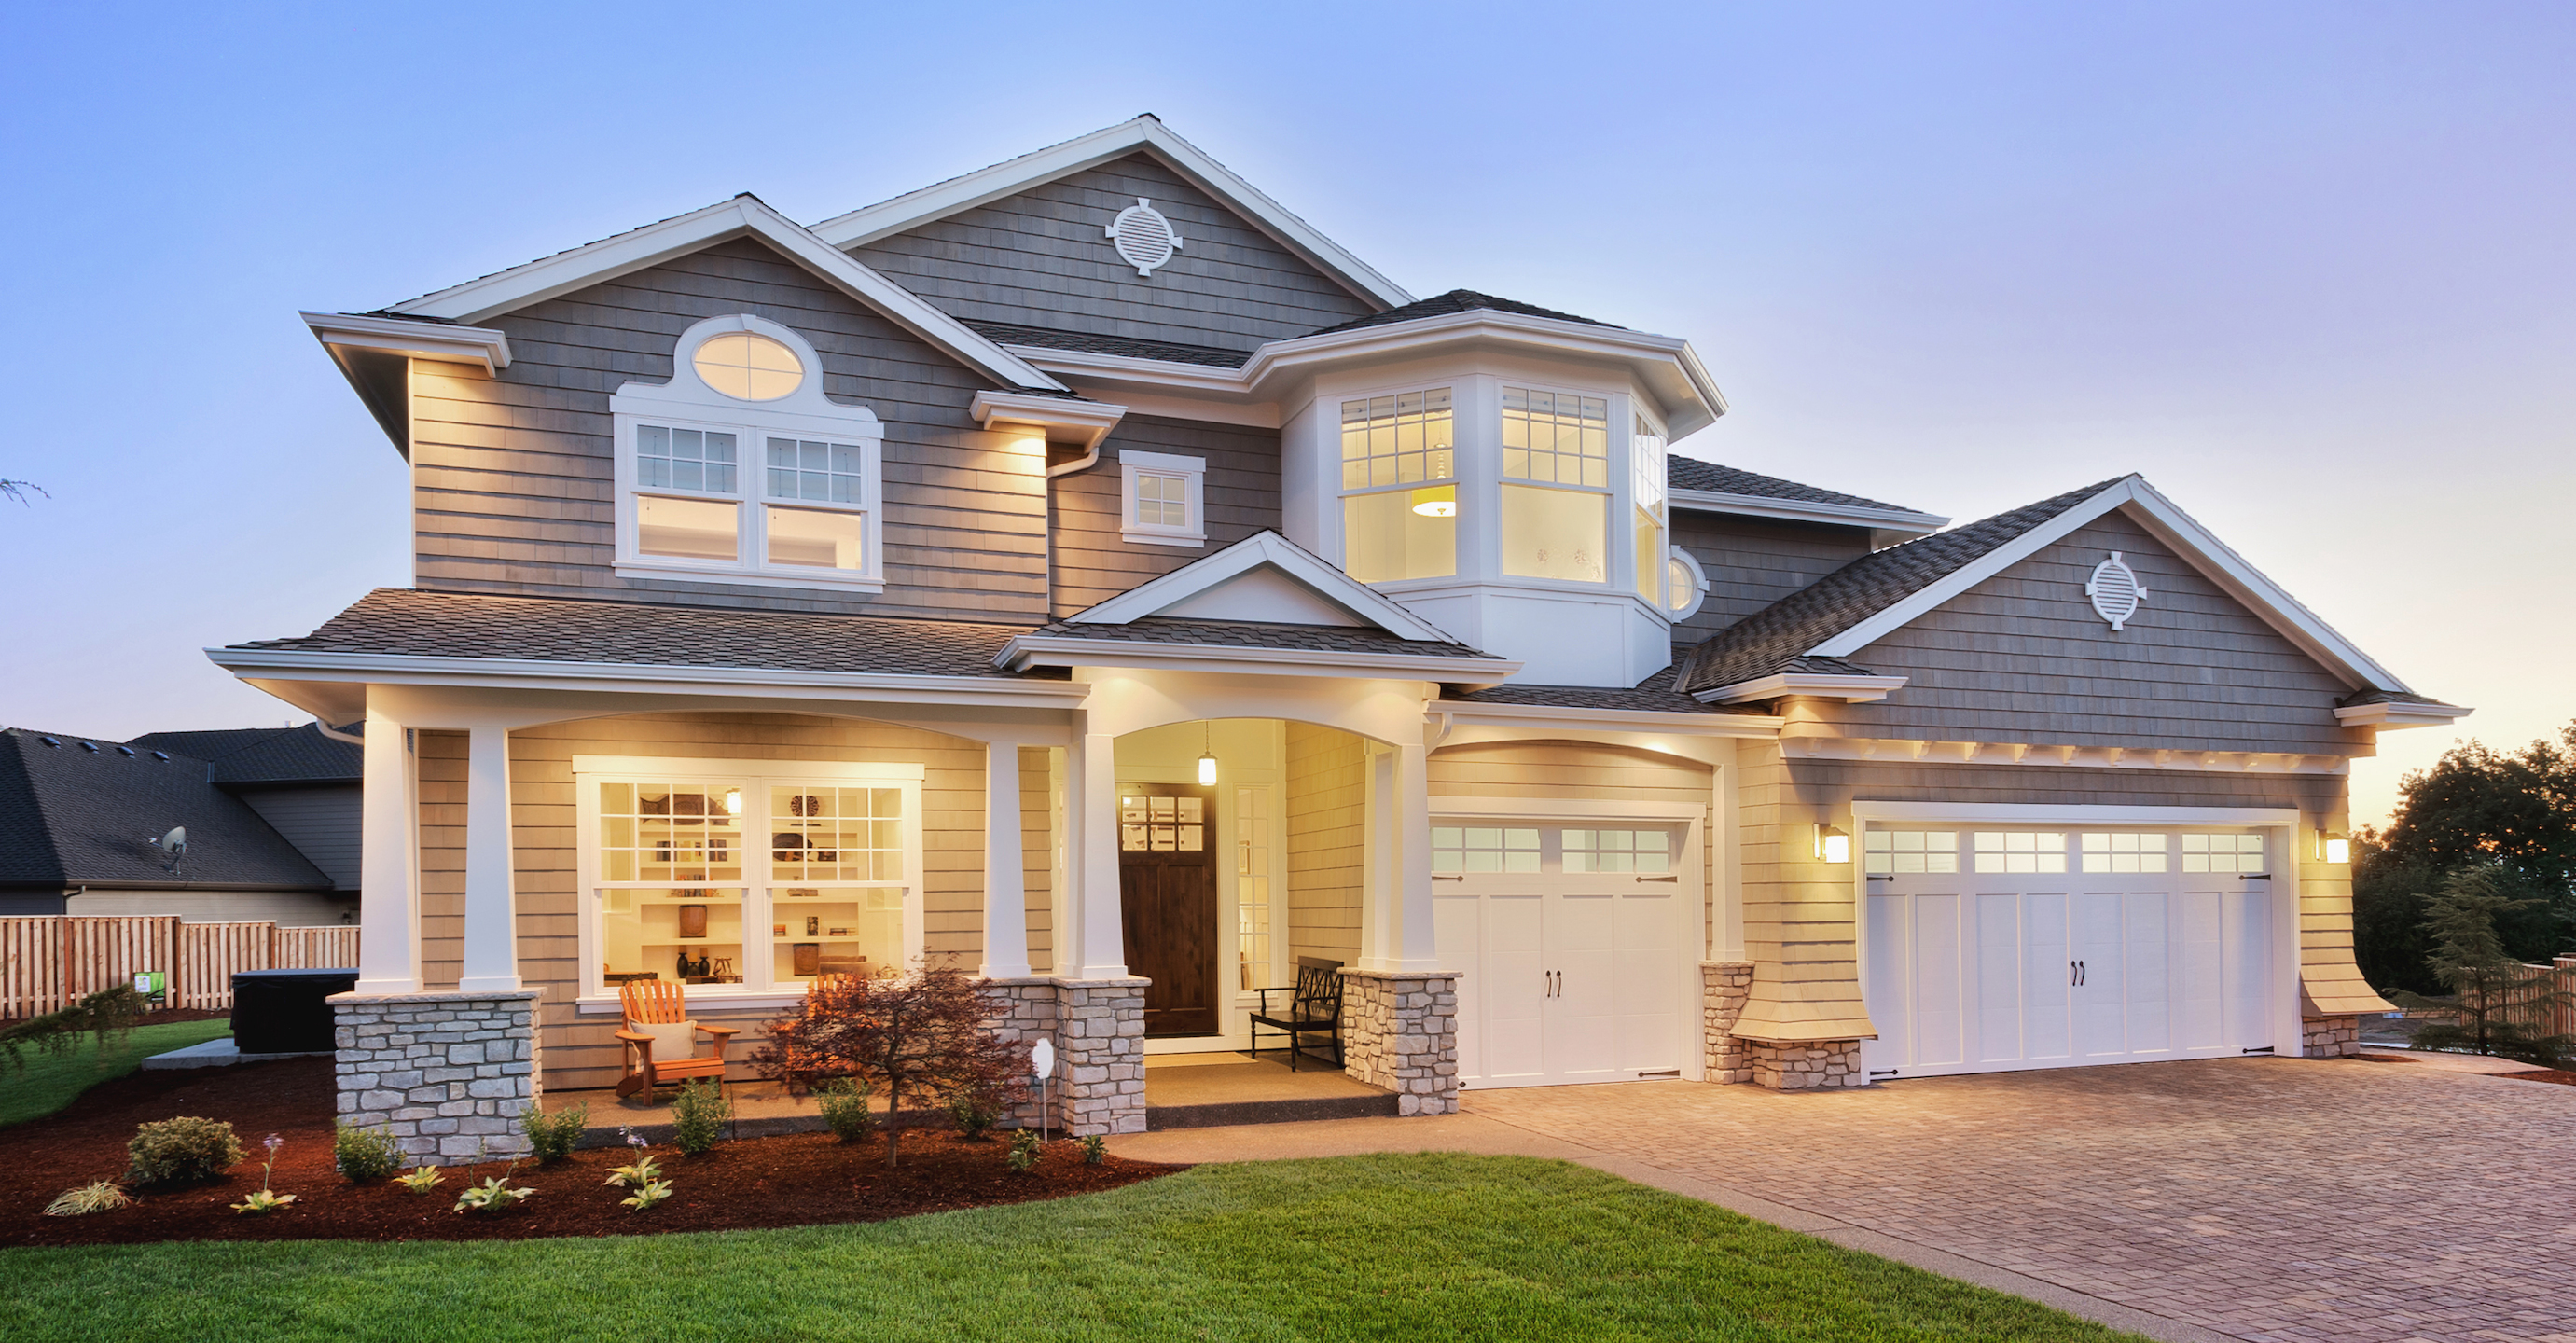 San Marcos Real Estate Homes For Sale